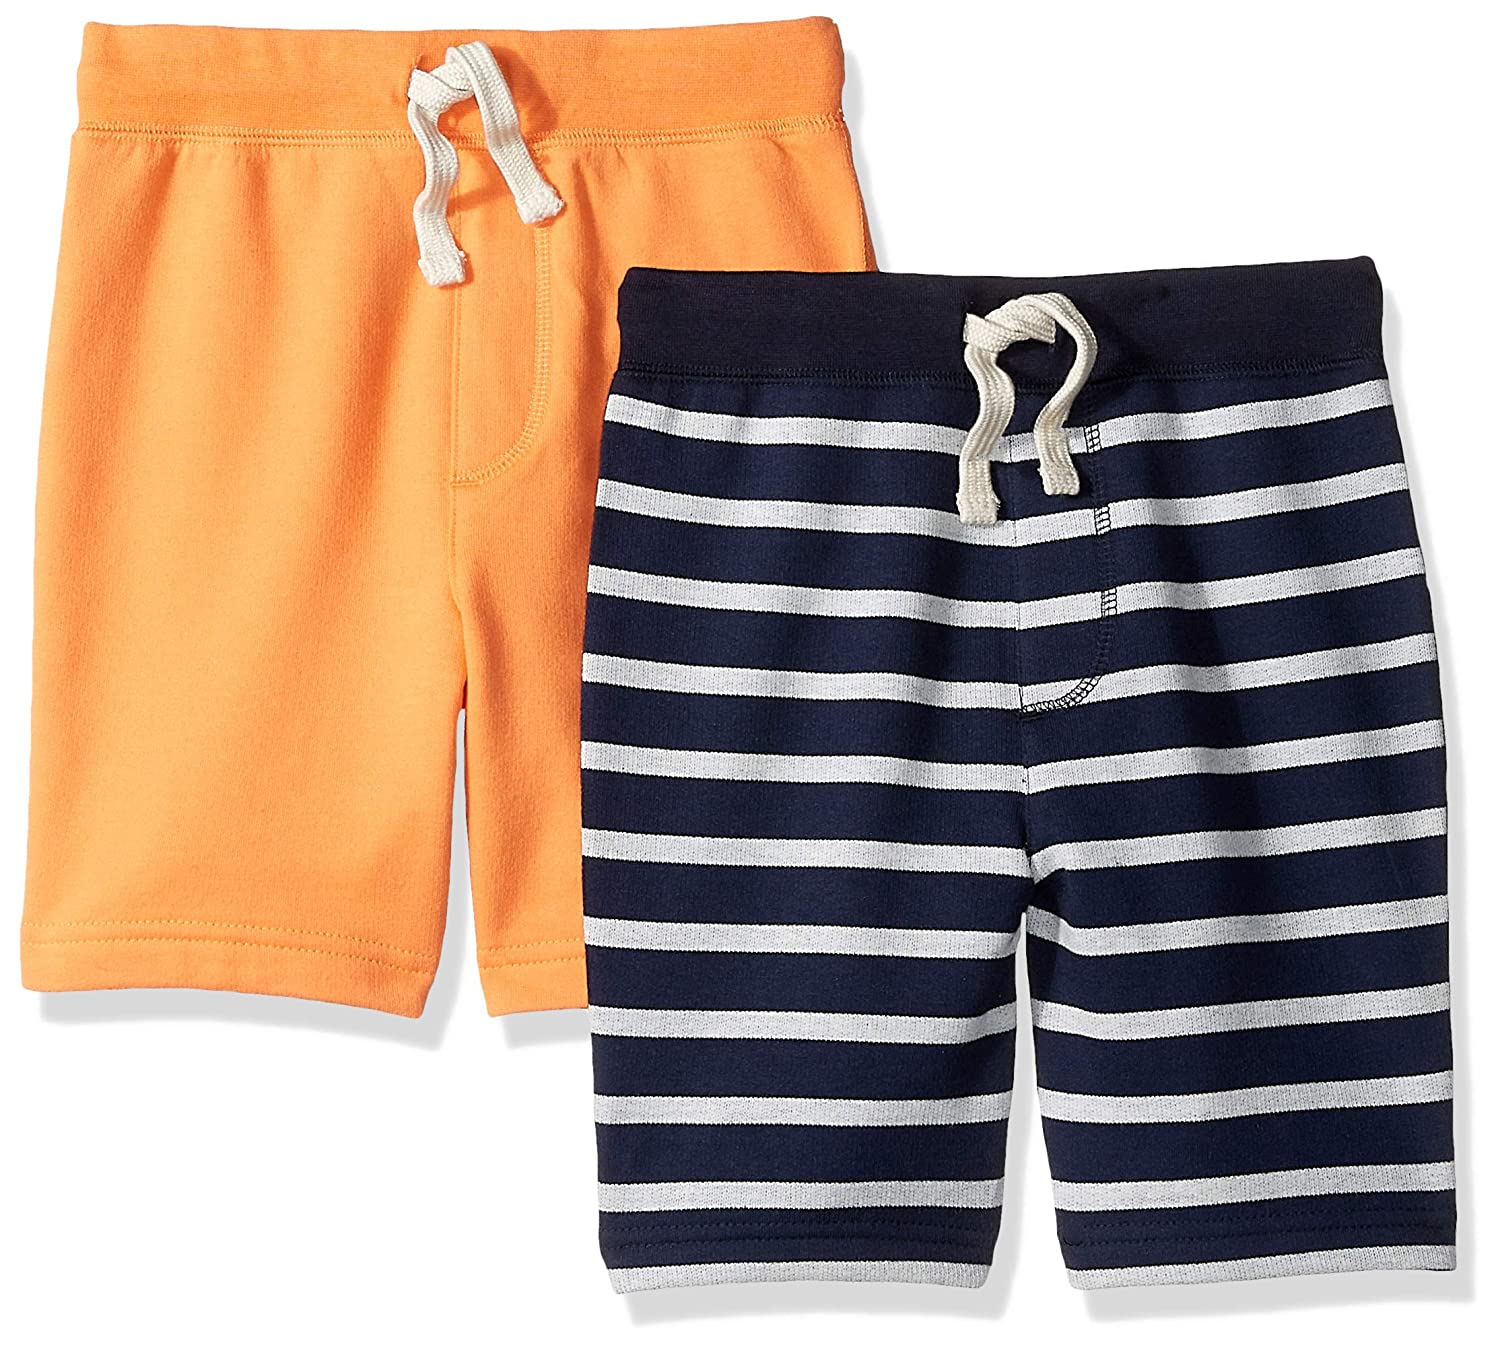 LOOK by crewcuts Boys 2-Pack Knit Pull on Shorts L3233